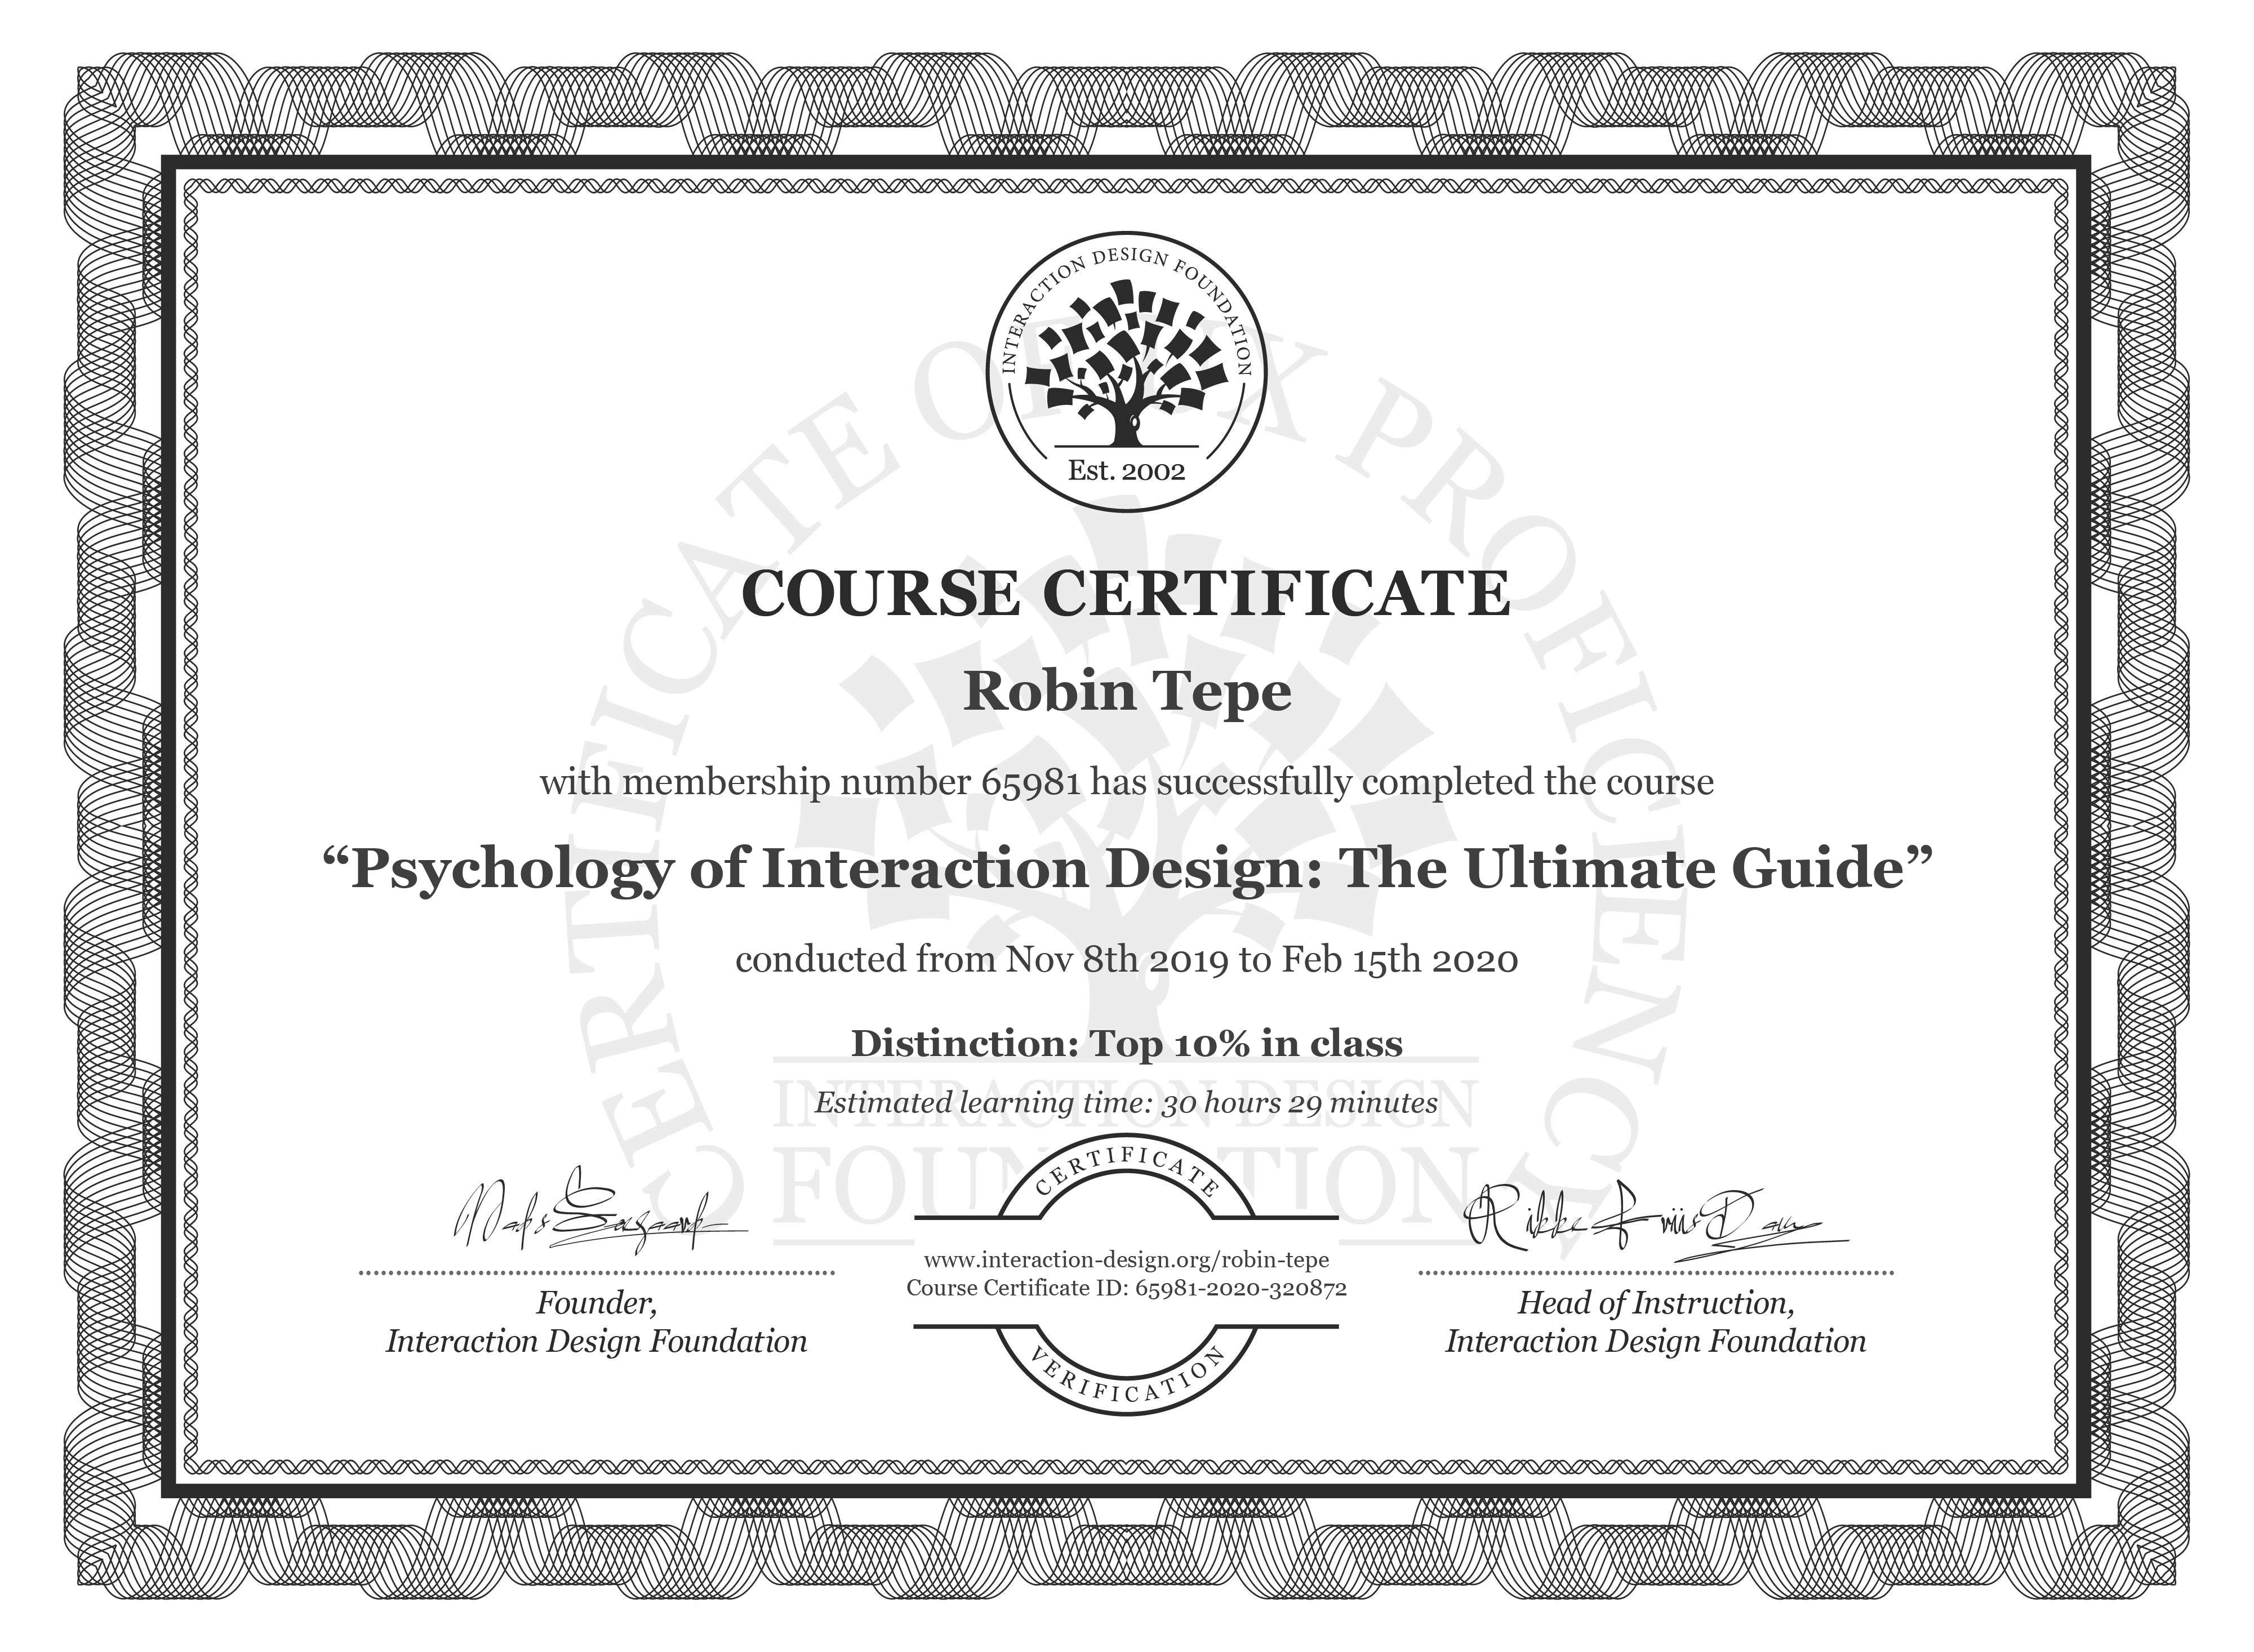 Robin Tepe's Course Certificate: Psychology of Interaction Design: The Ultimate Guide